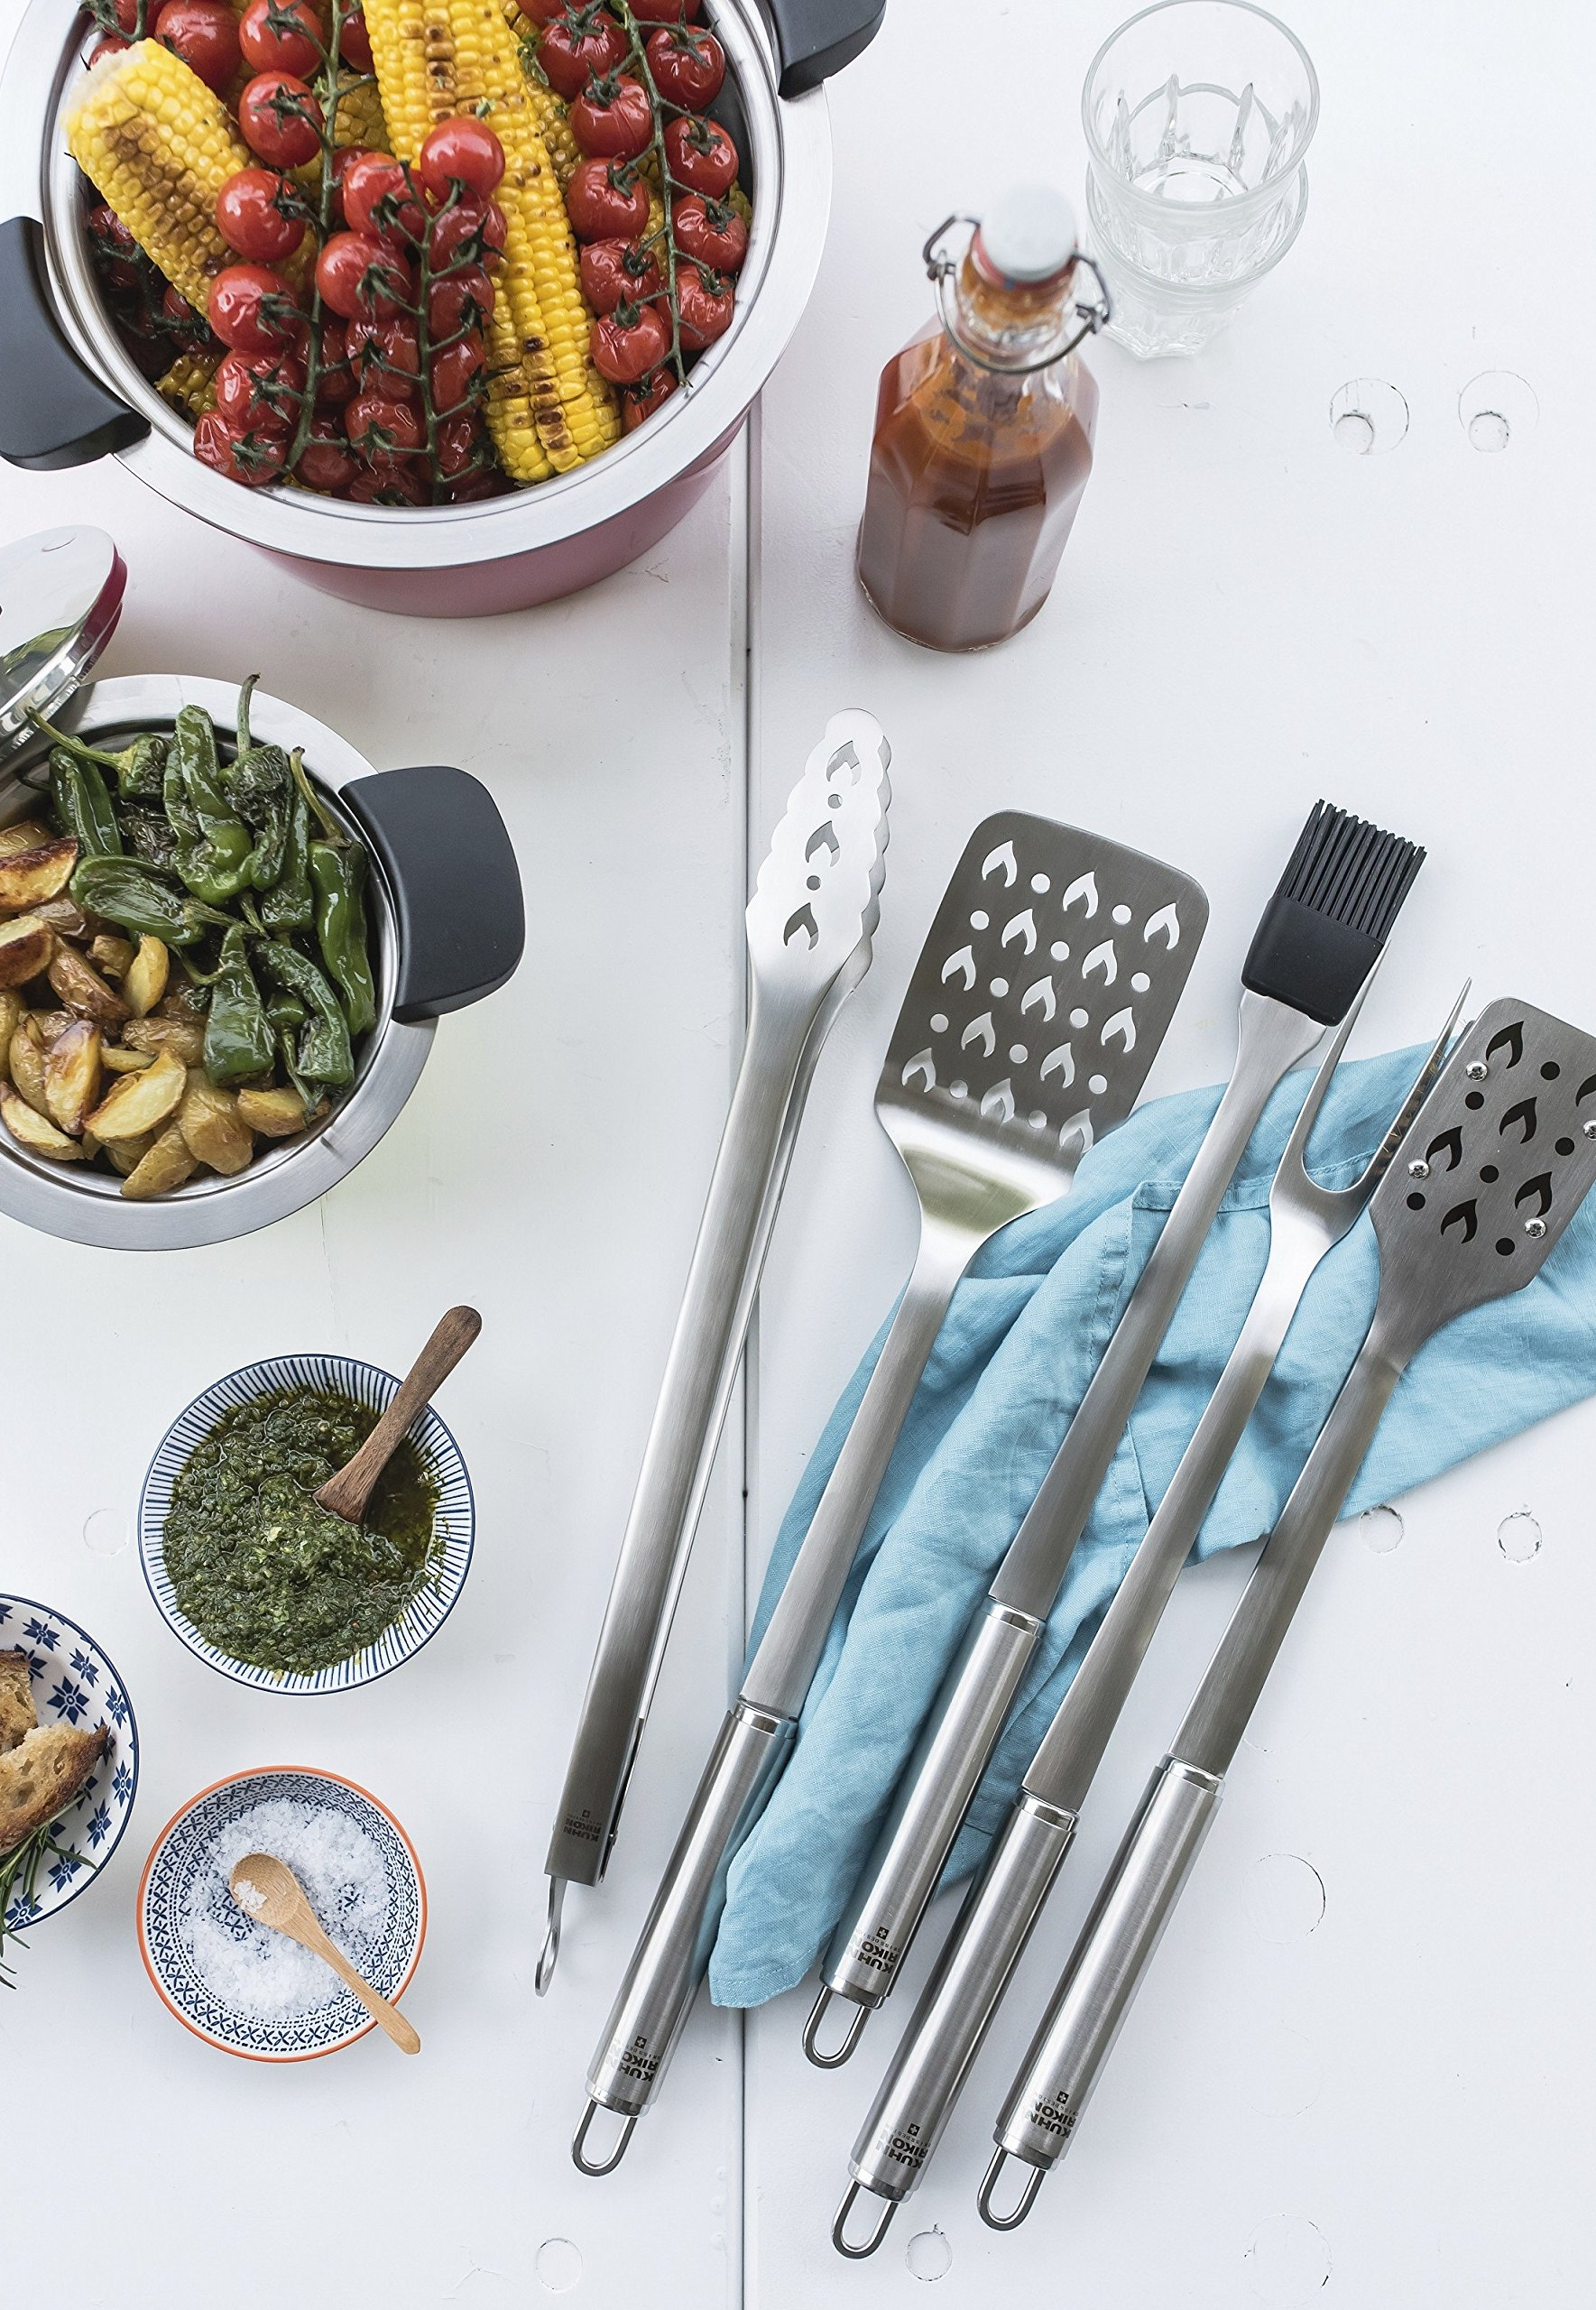 Kuhn Rikon 5 Piece BBQ Tool Set with Case, Stainless Steel by Kuhn Rikon (Image #4)